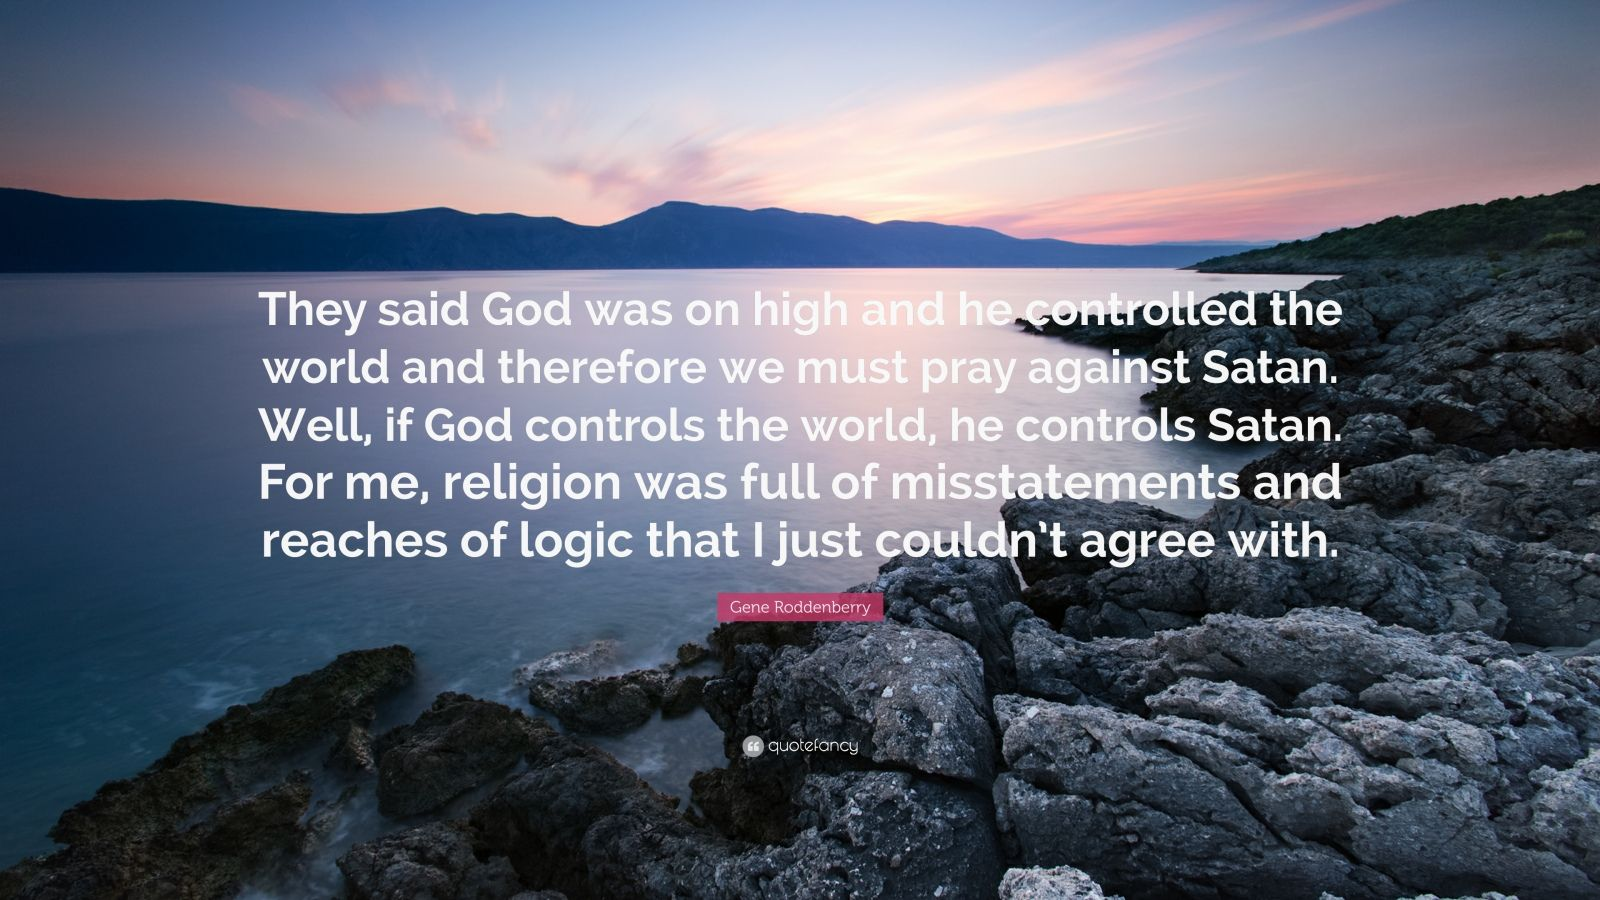 """Gene Roddenberry Quote: """"They said God was on high and he controlled the world and therefore we must pray against Satan. Well, if God controls the world, he controls Satan. For me, religion was full of misstatements and reaches of logic that I just couldn't agree with."""""""